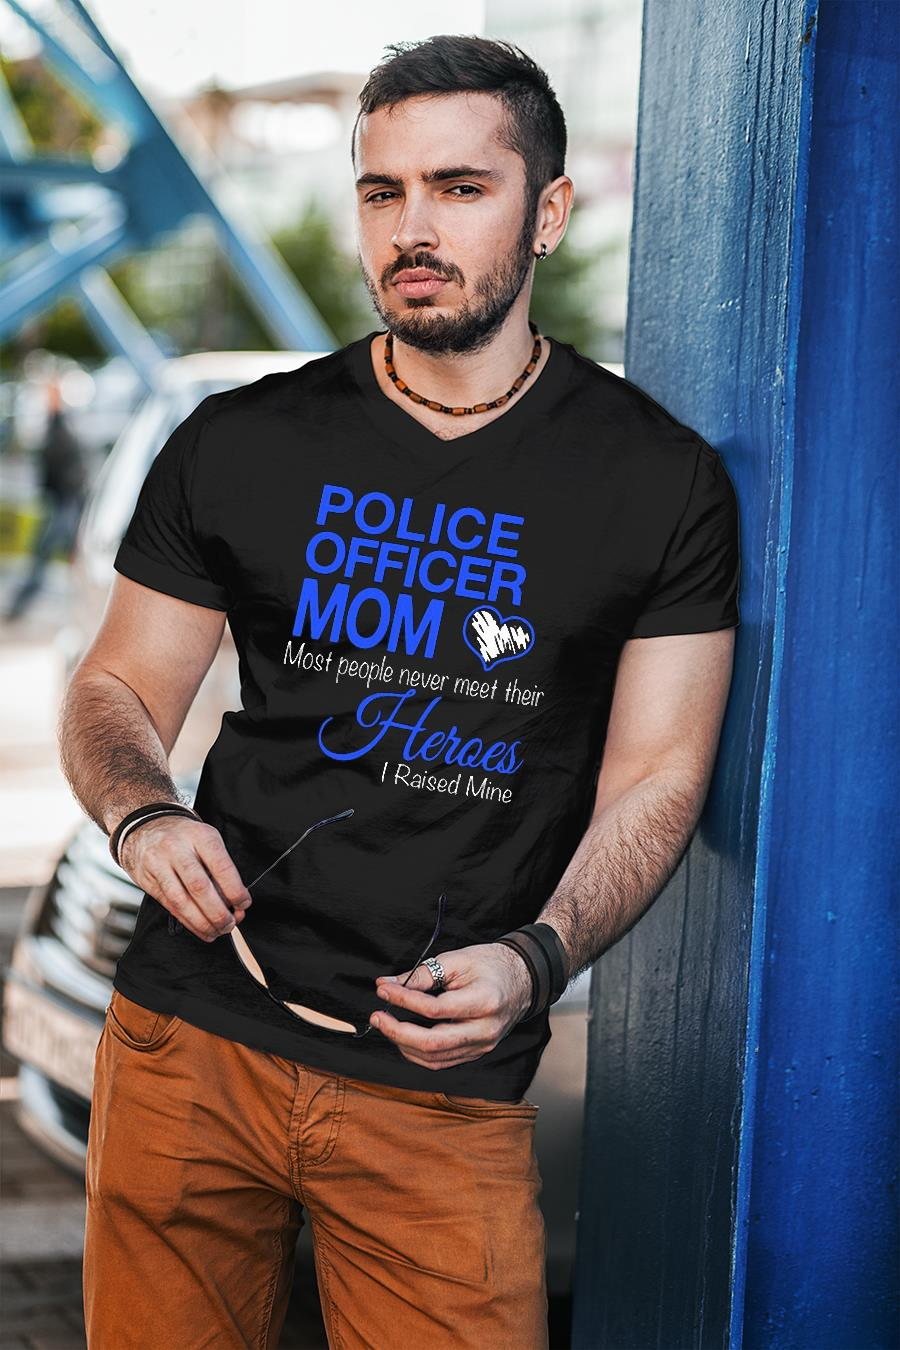 Police officer mom most people never meet their heroes I raiser mine shirt unisex